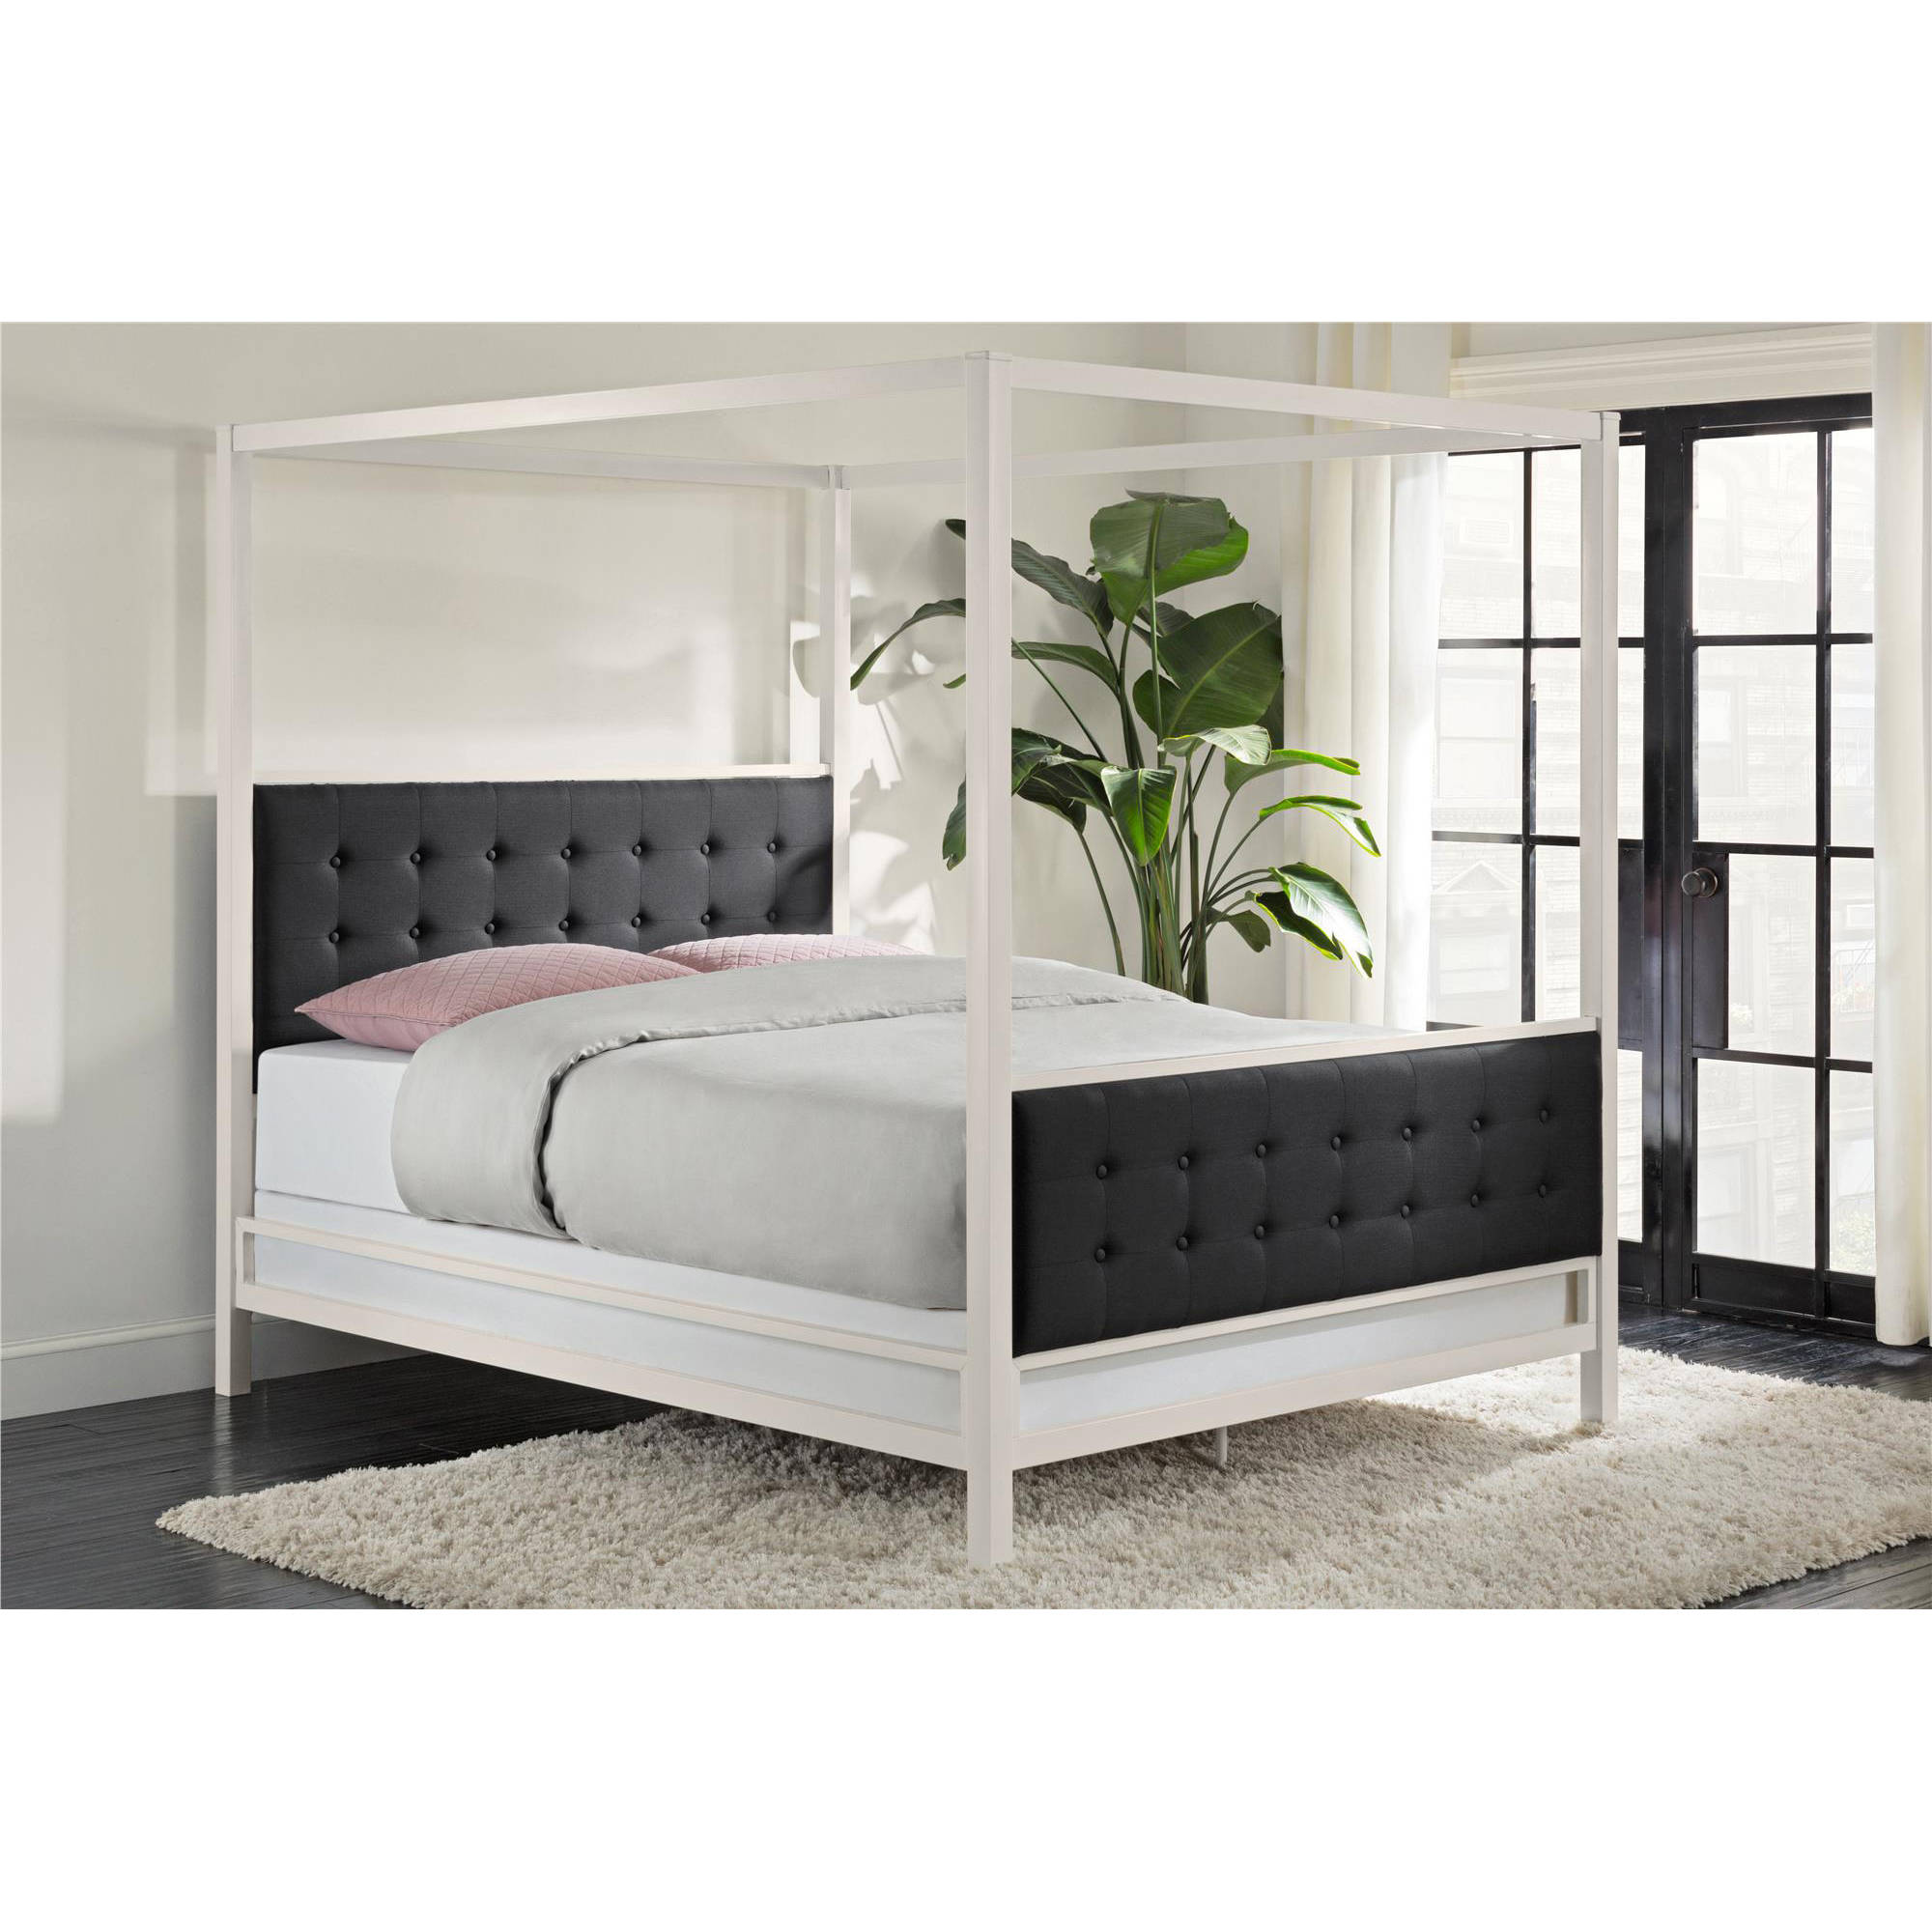 DHP Soho Modern Canopy Bed, White Metal with Black Linen, Queen (Box 2 of 2)